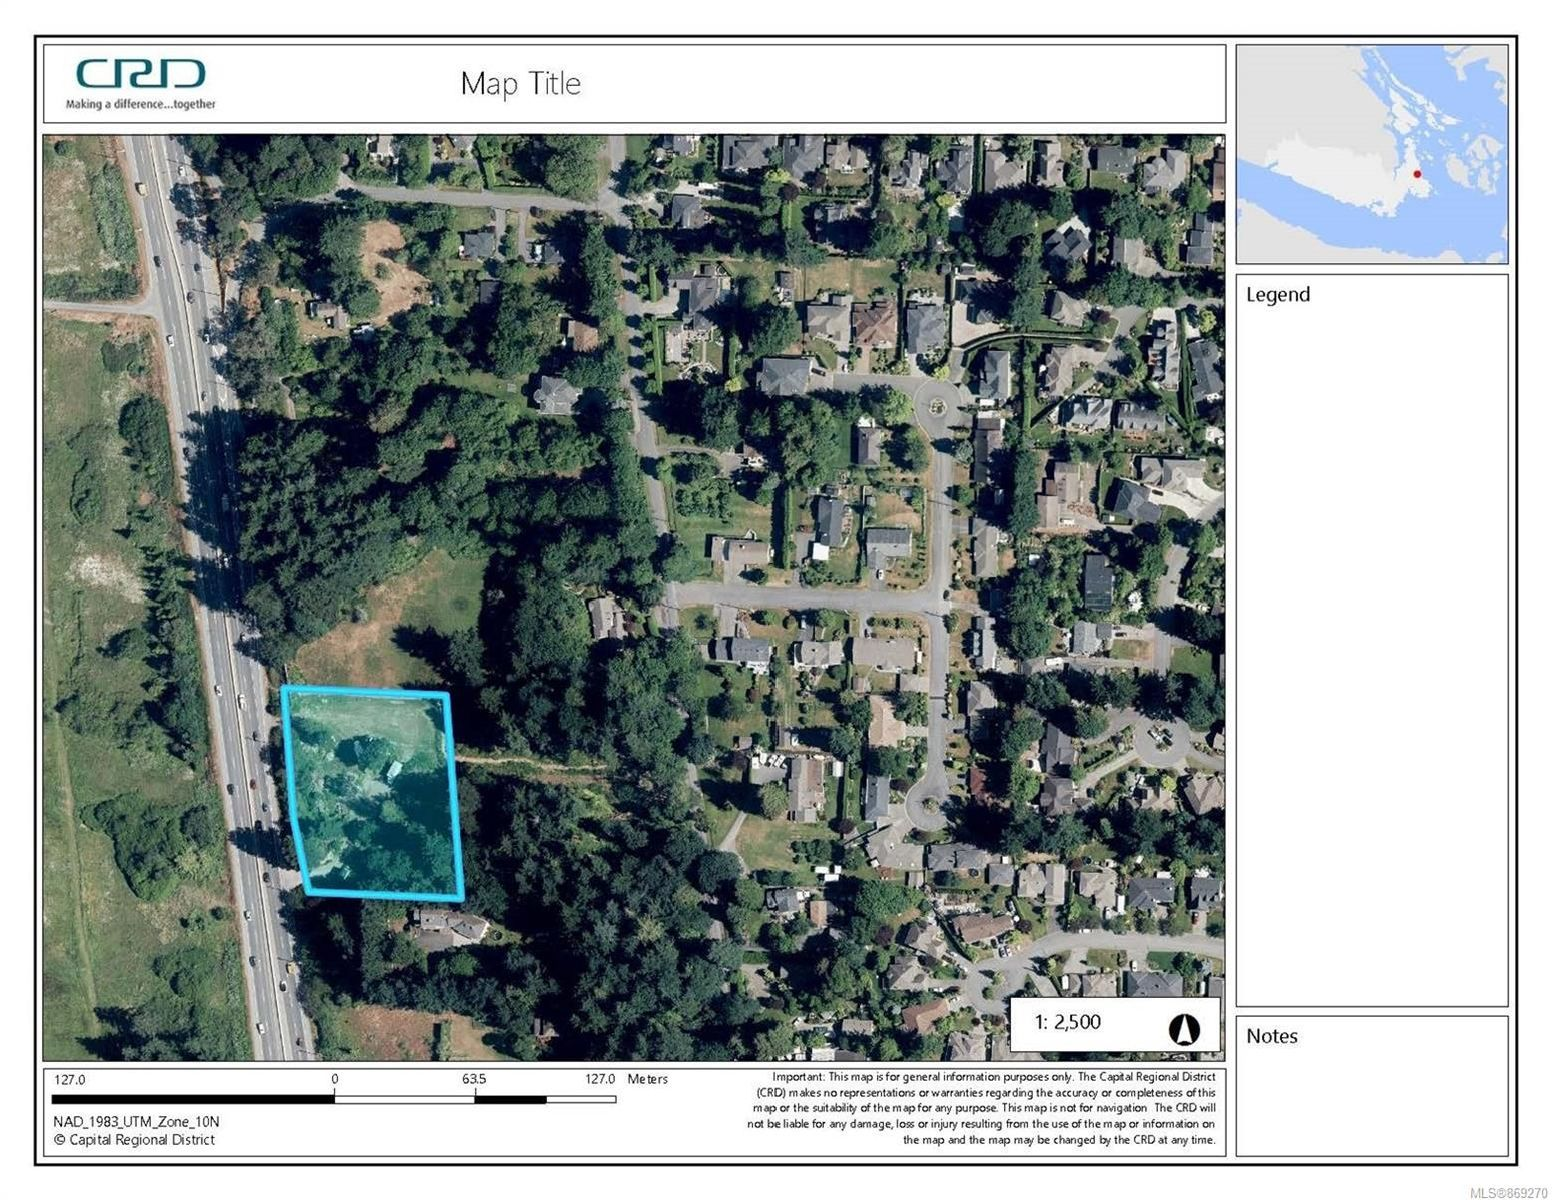 Main Photo: 5075 Pat Bay Hwy in : SE Cordova Bay Land for sale (Saanich East)  : MLS®# 869270